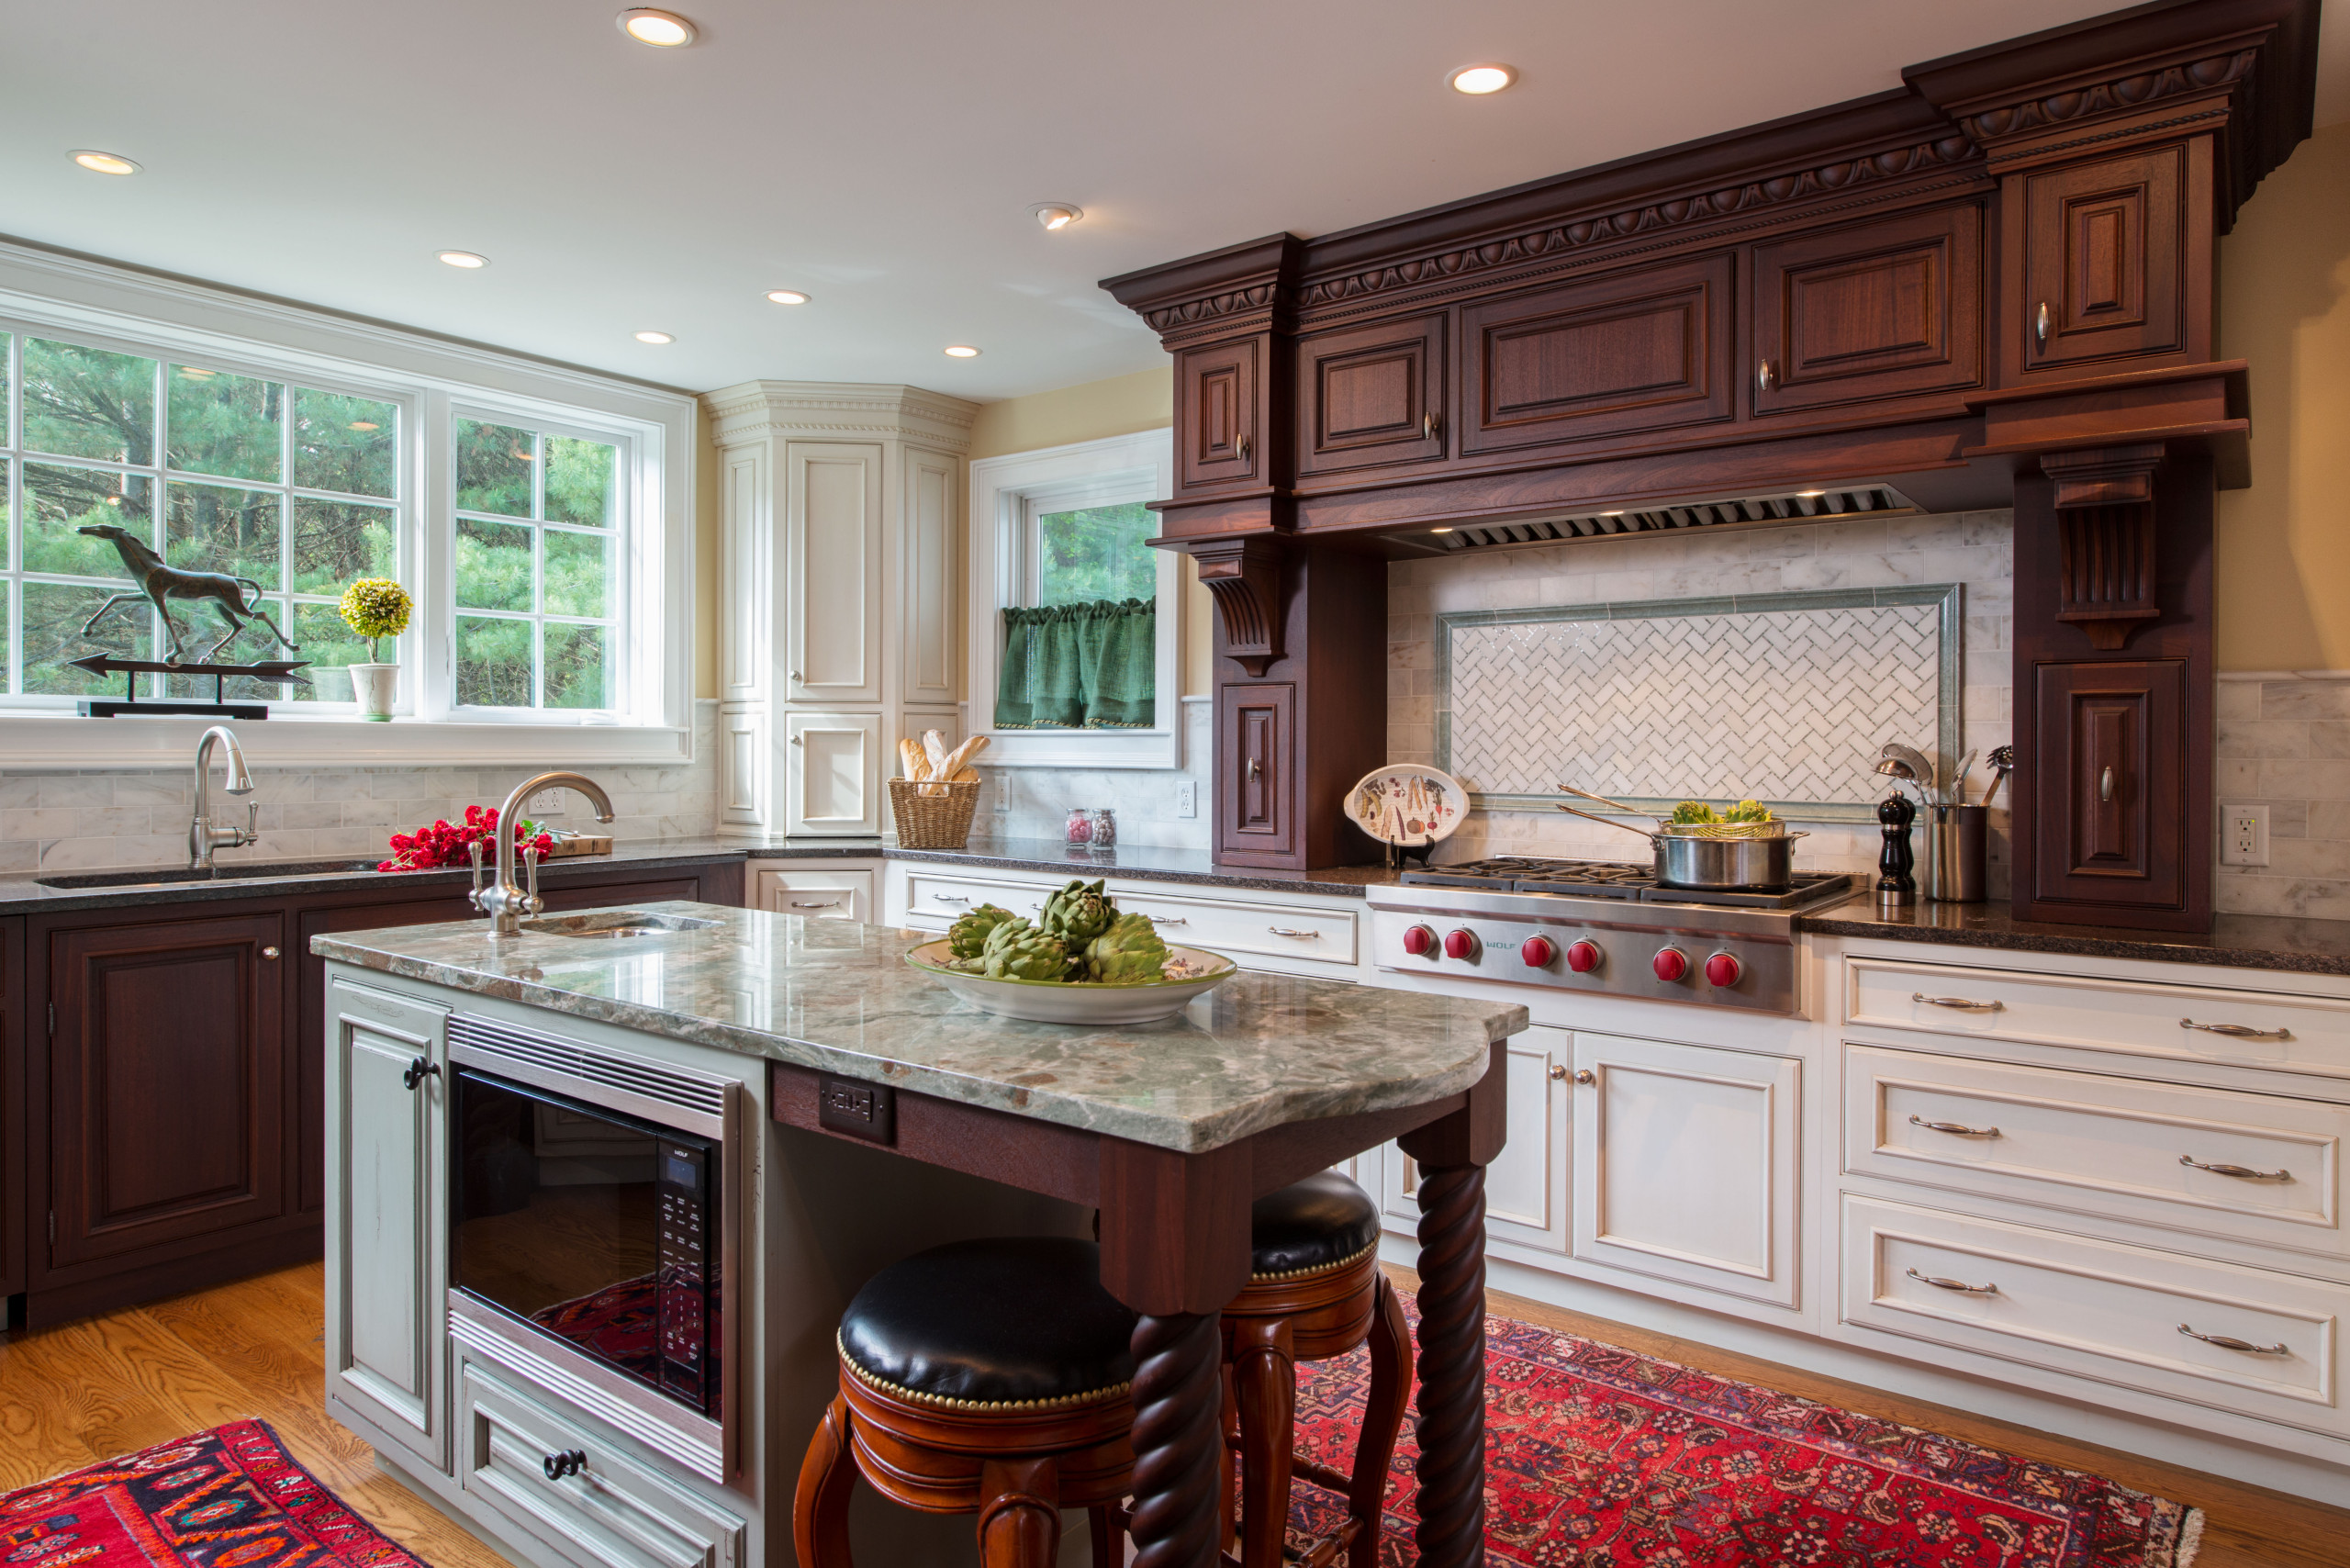 Mahogany and Maple Mix with dramatic style.  Delicious Kitchens & Interiors, LLC